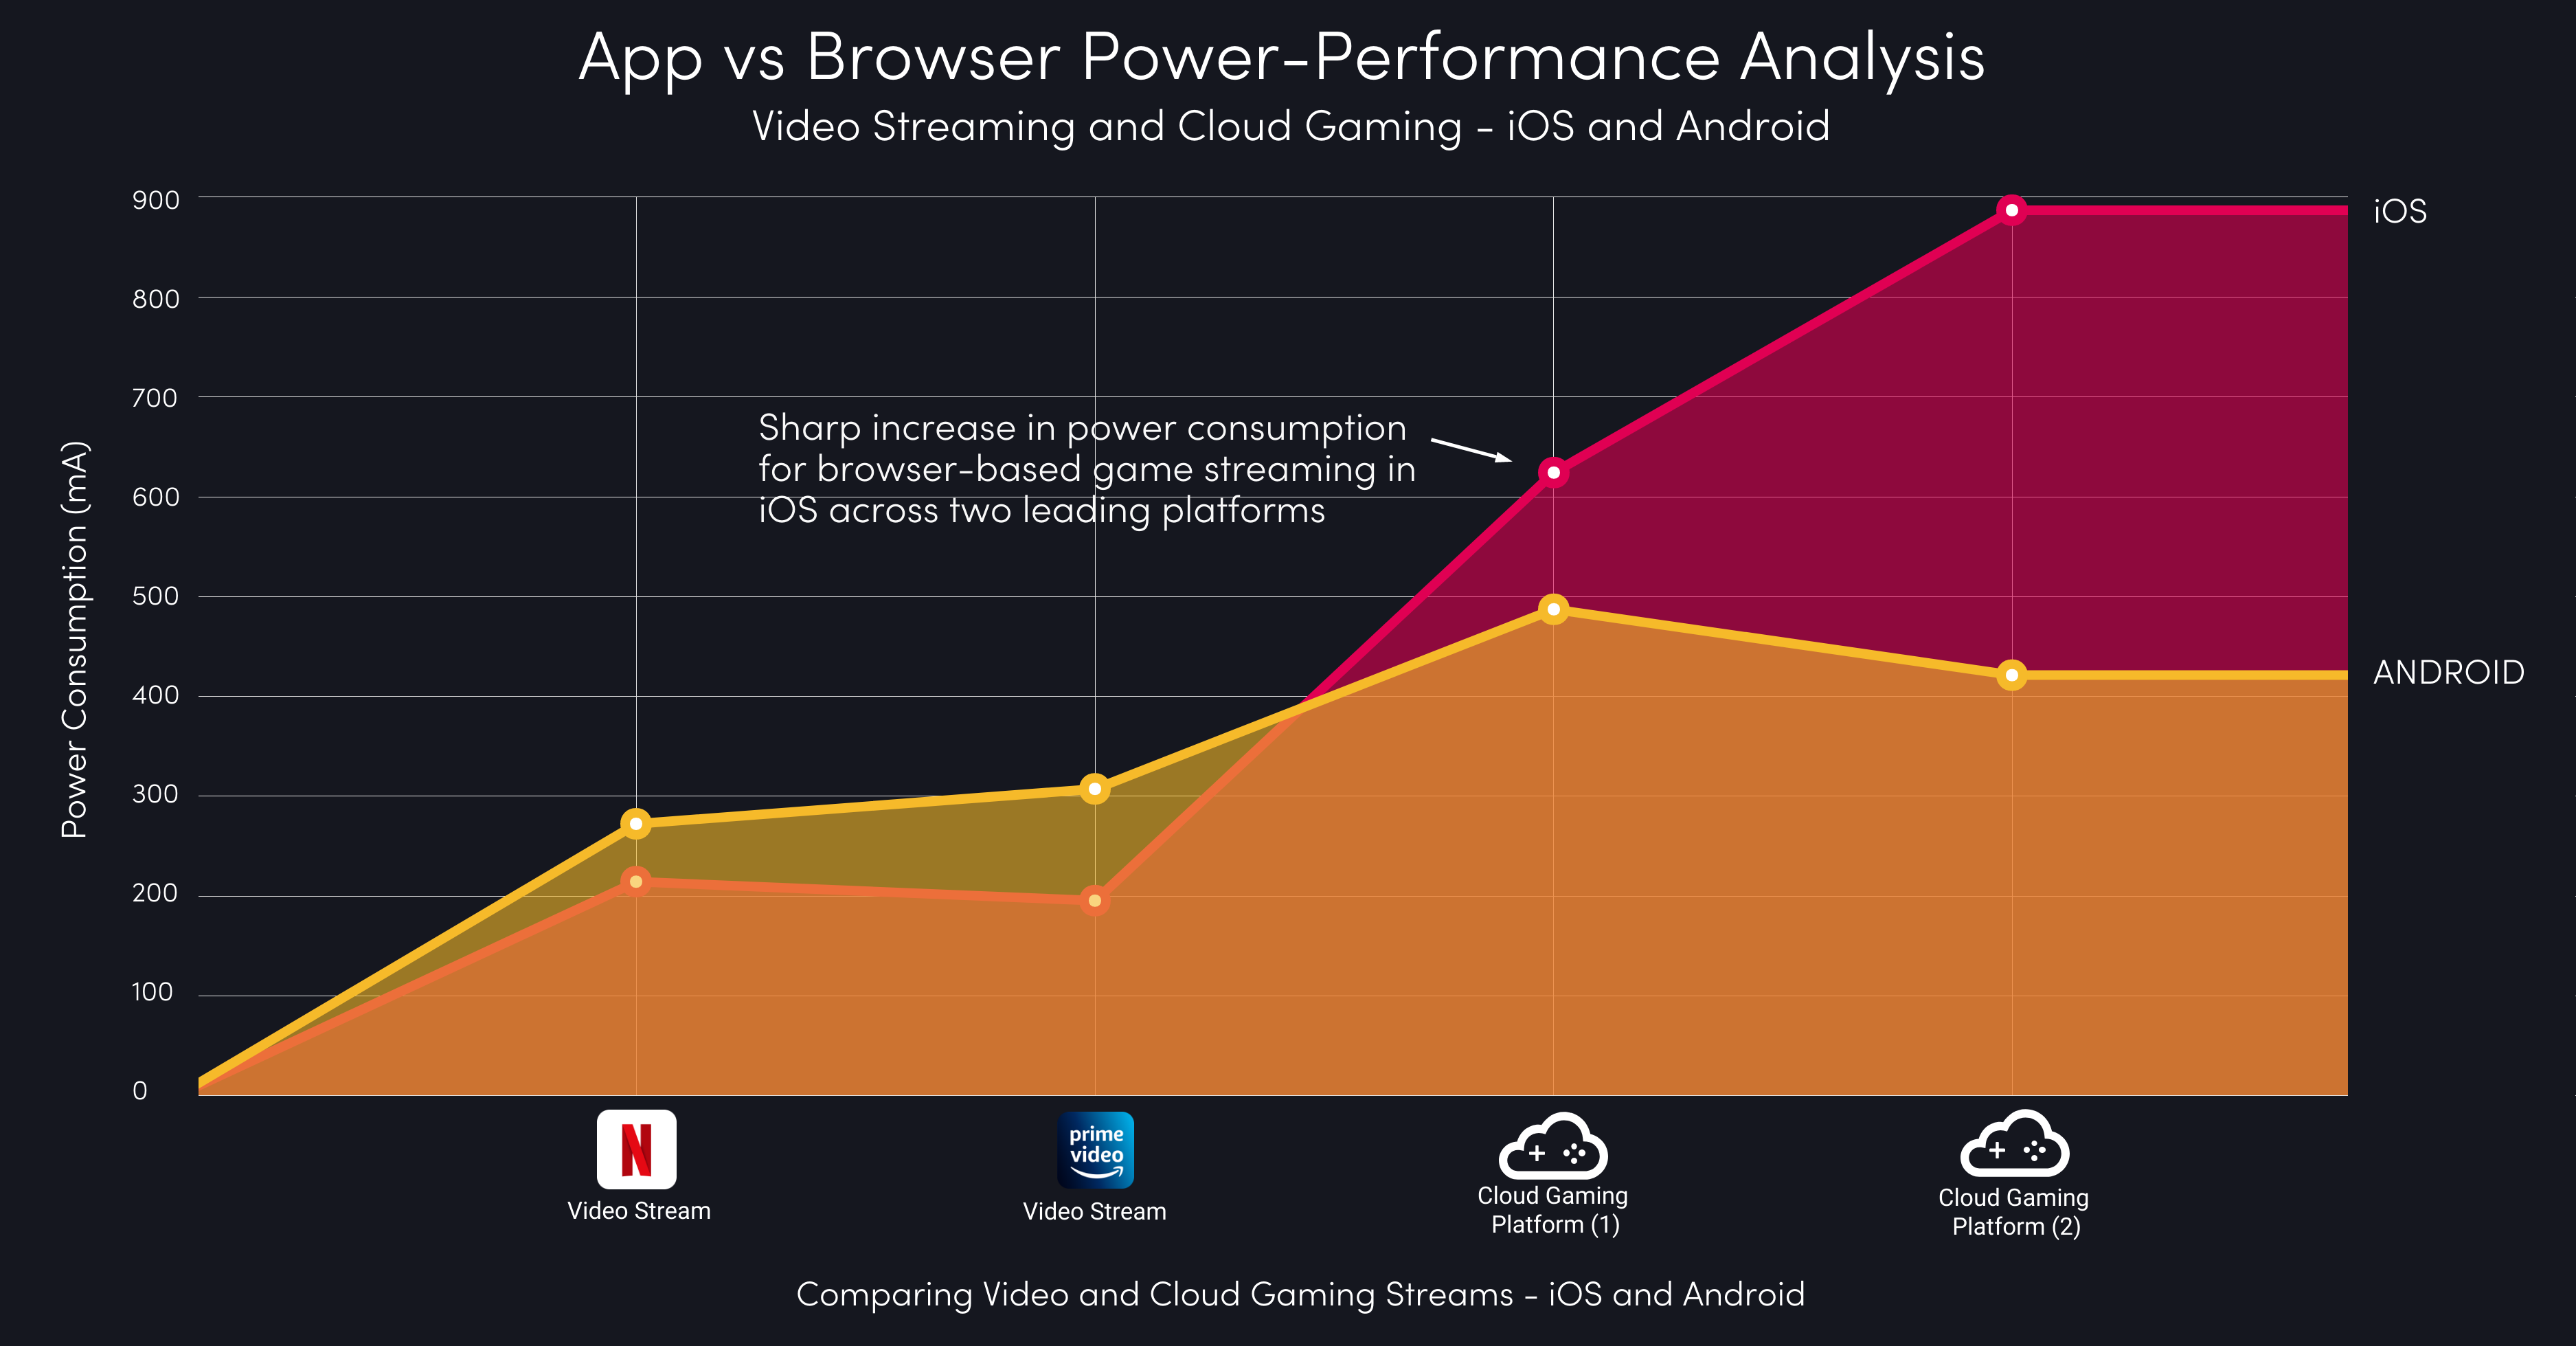 Power-Consumption App vs Browser across Android and iOS